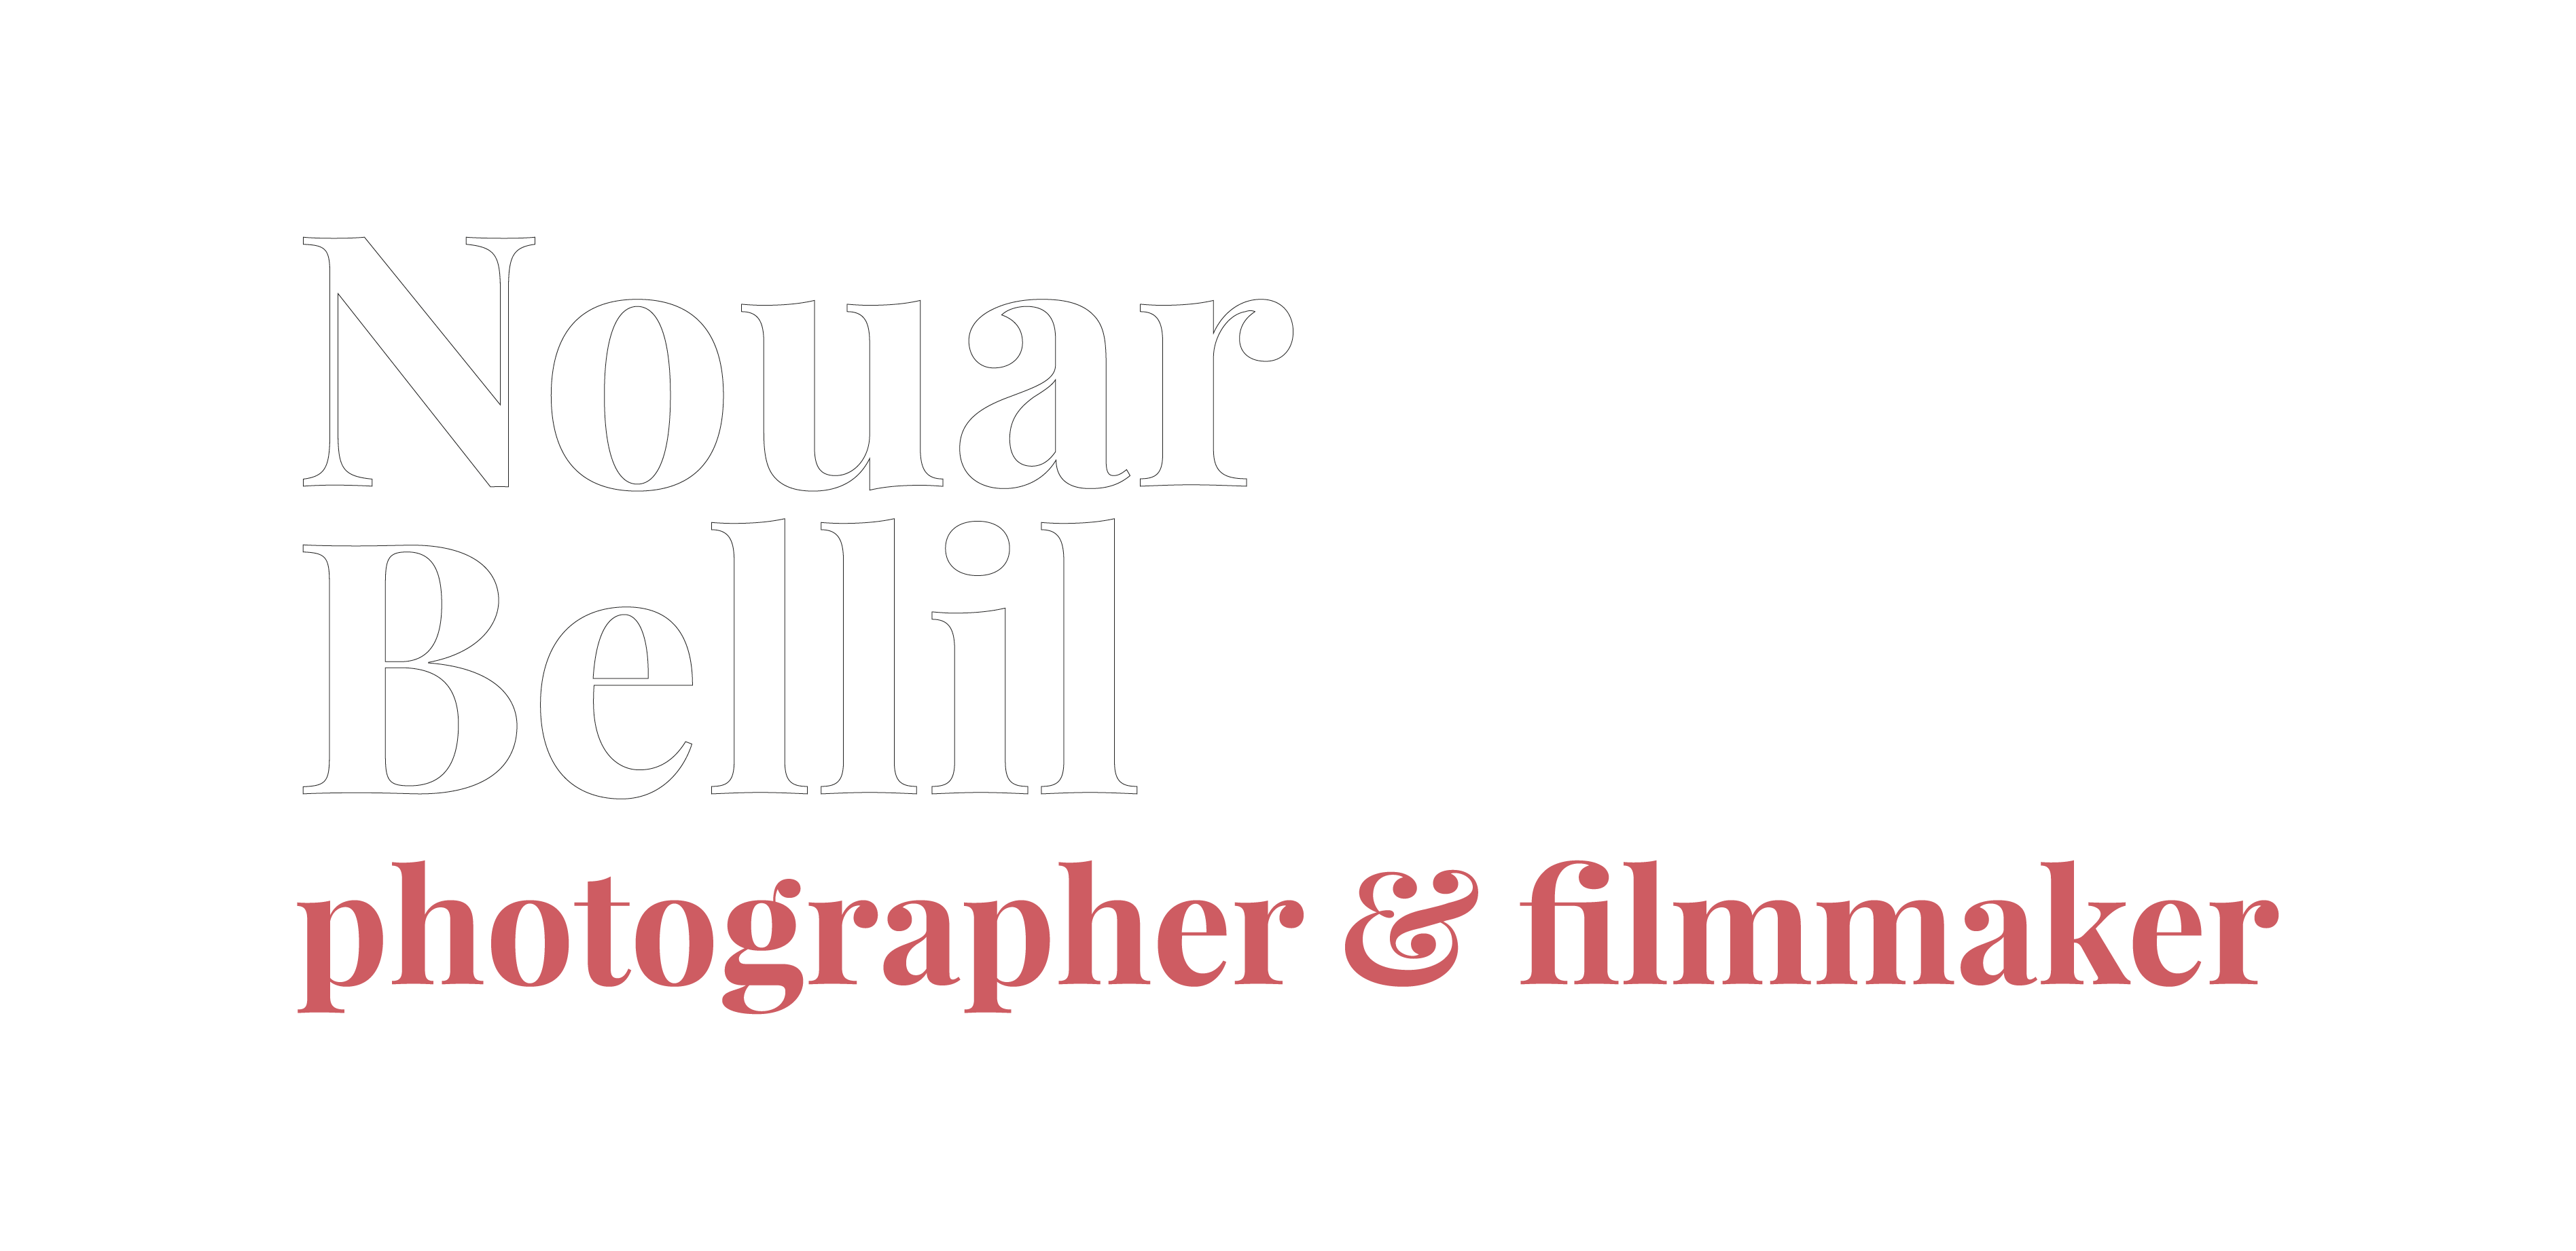 Nouar Bellil | International Photographer & Filmmaker